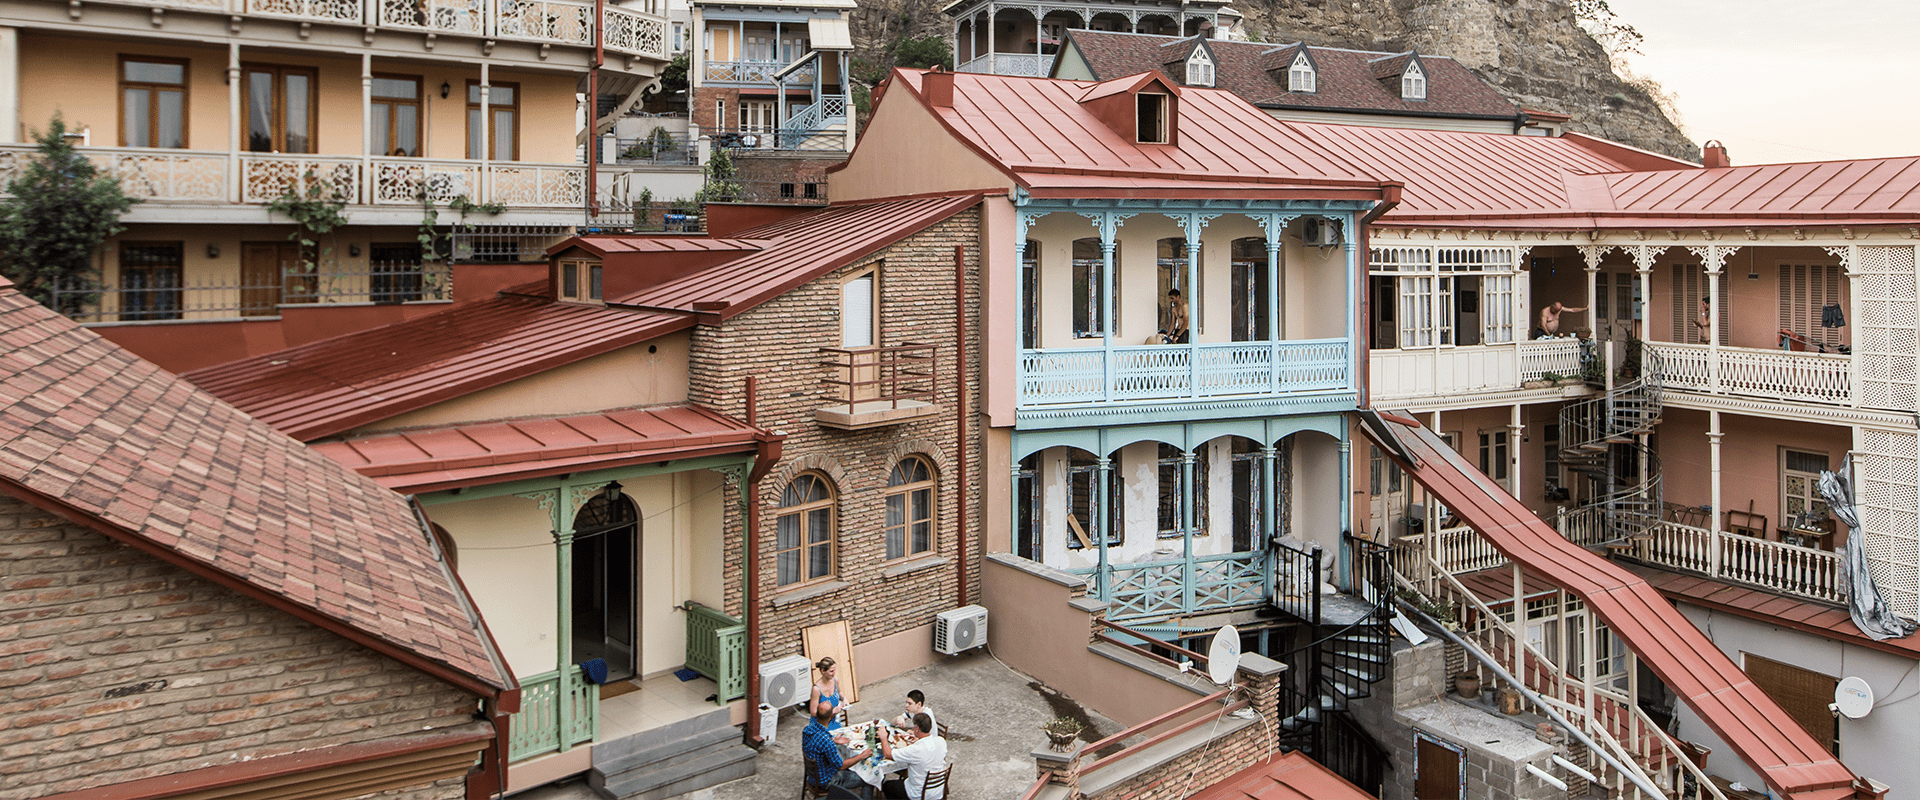 hotels in tbilisi city center